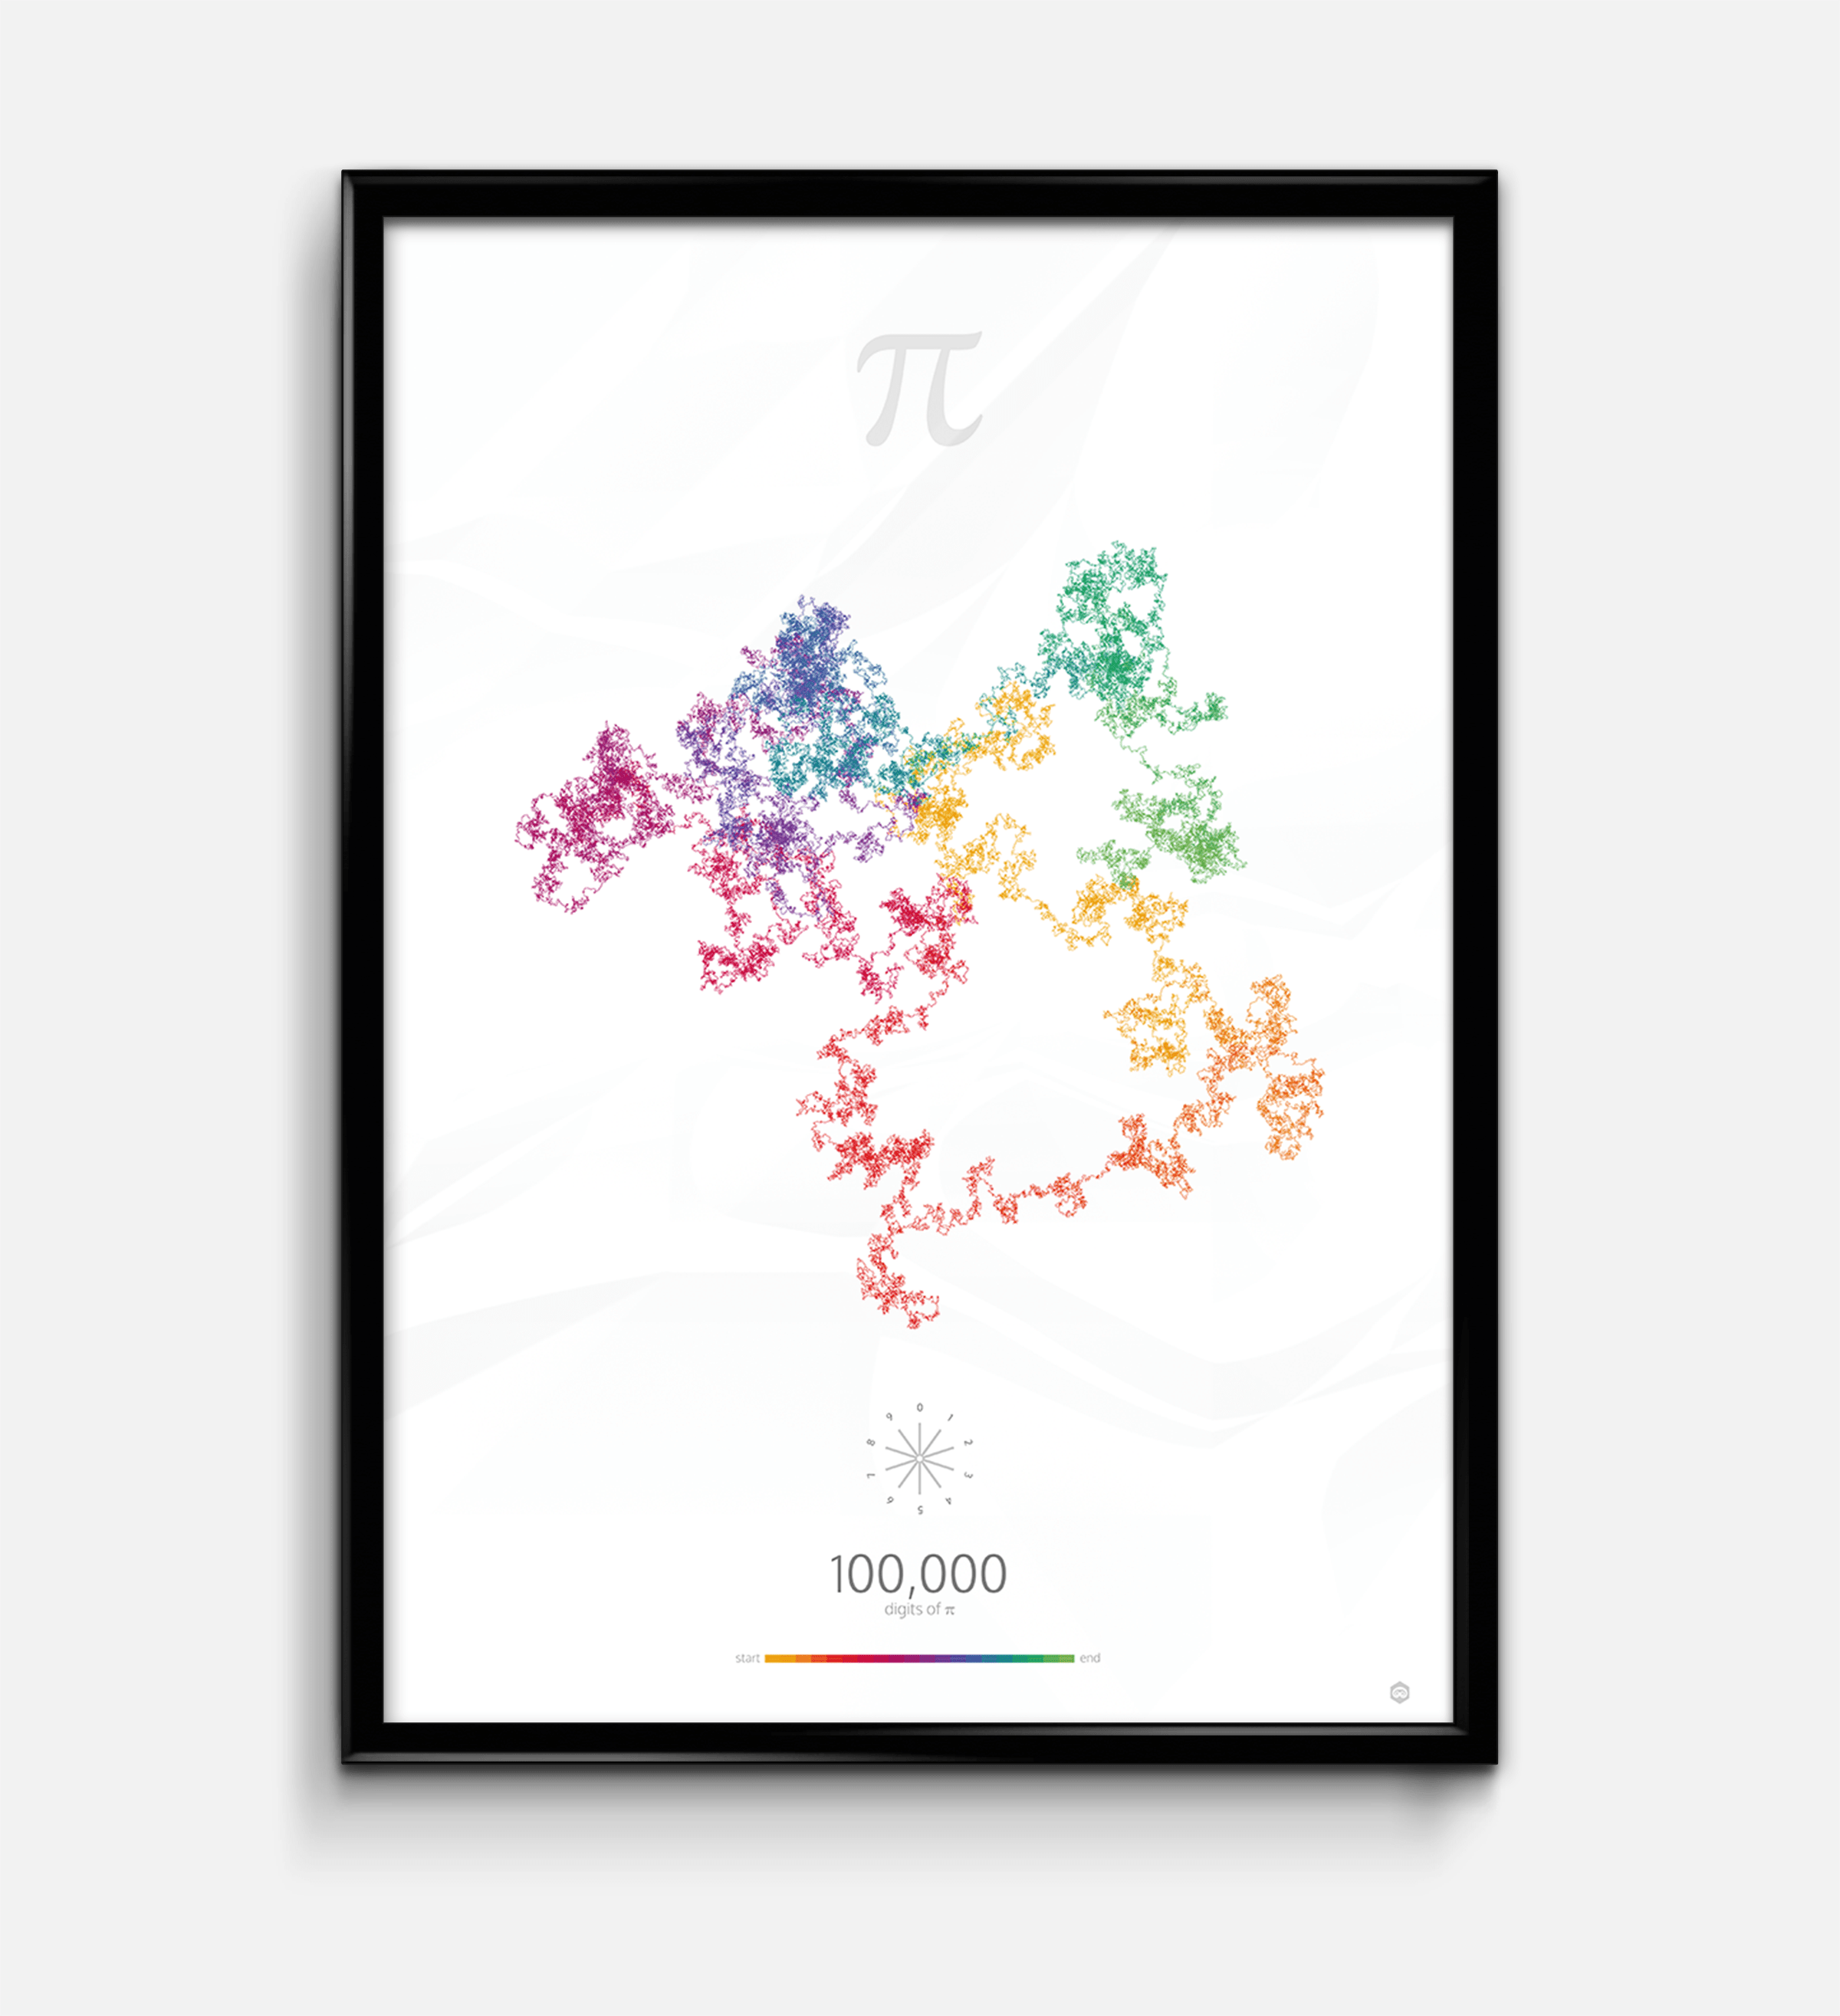 The poster of the first 10000 digits of pi